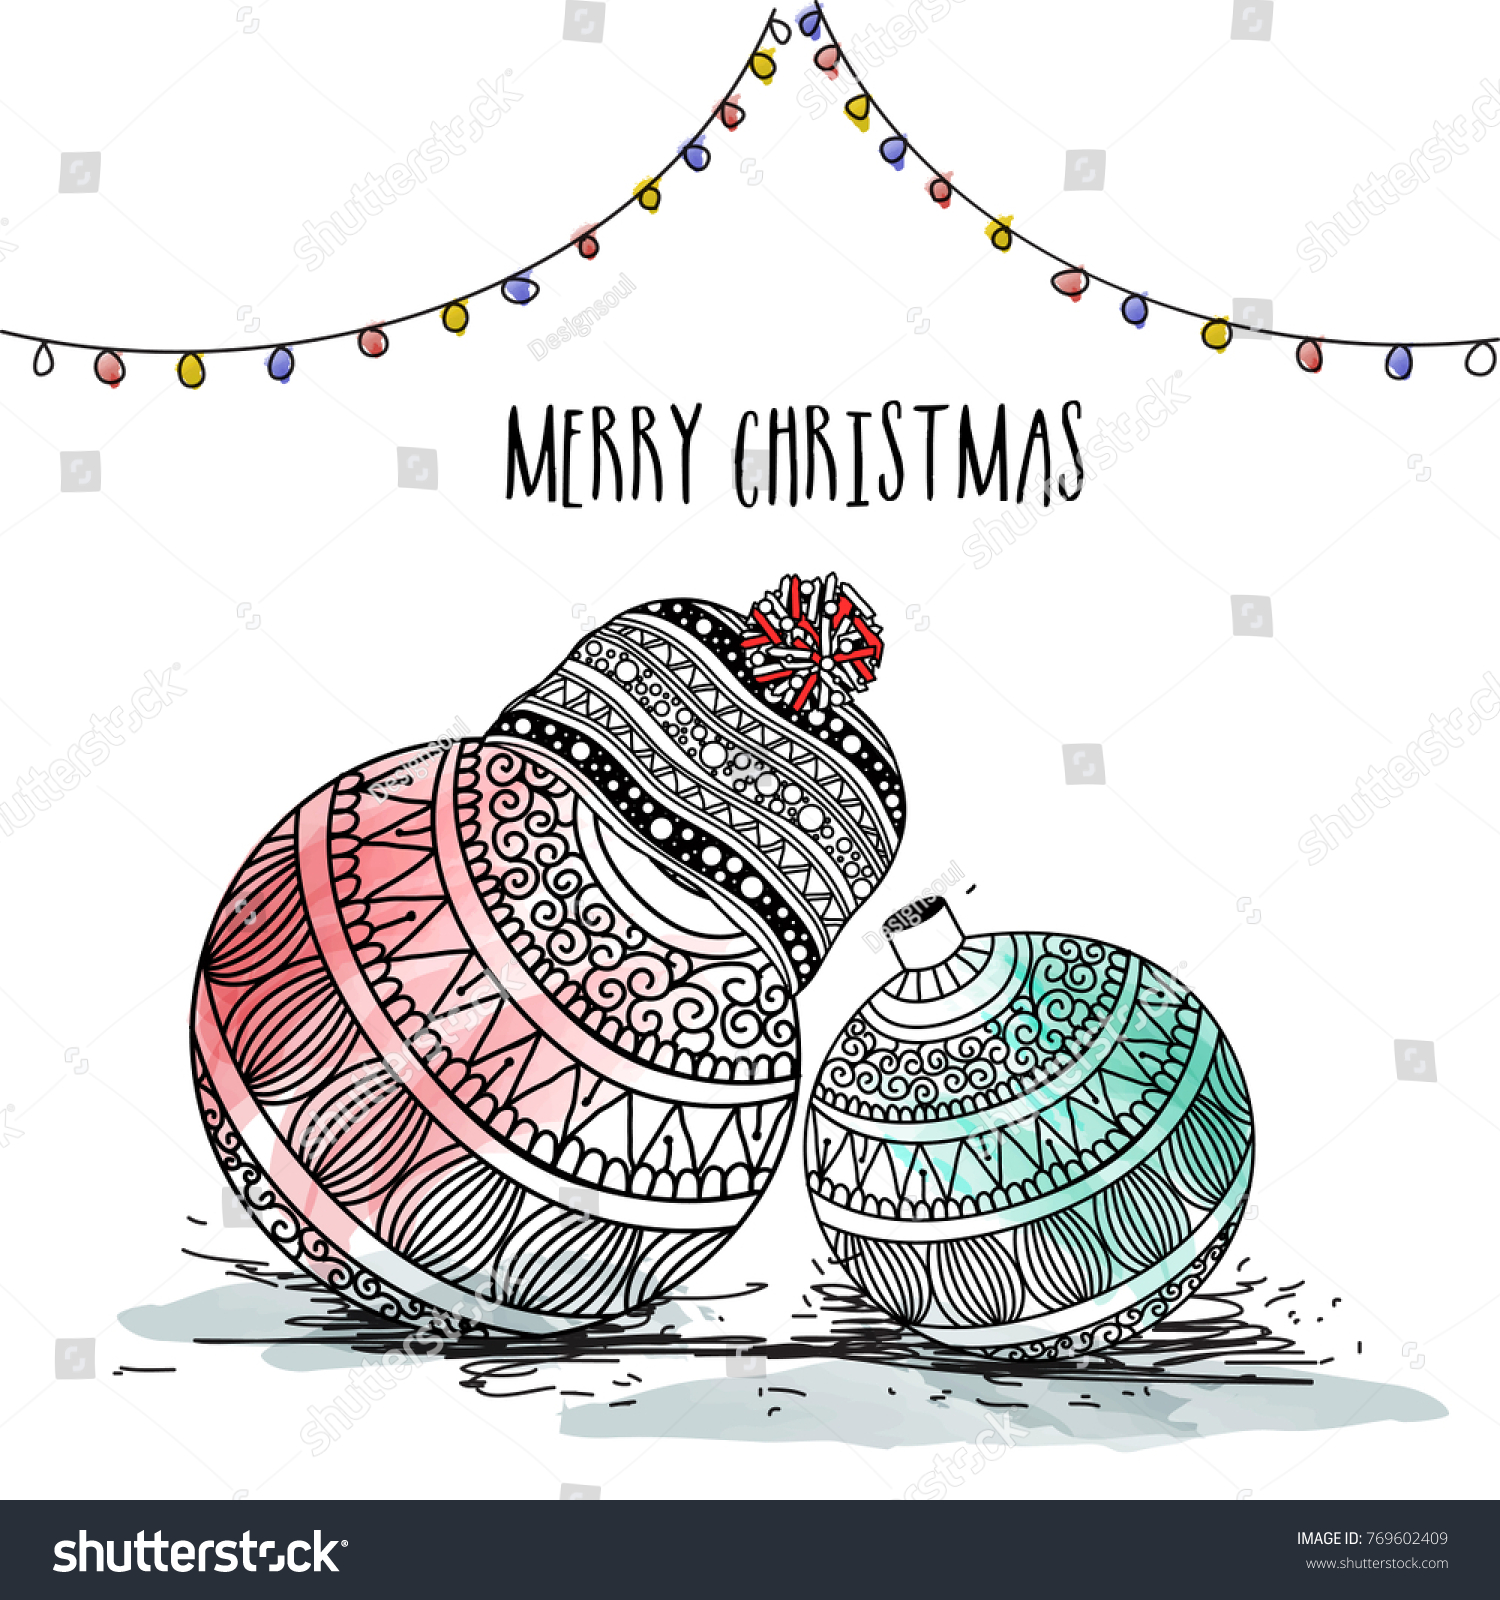 Merry Christmas A Christian Holiday Honoring Stock Vector (Royalty ...